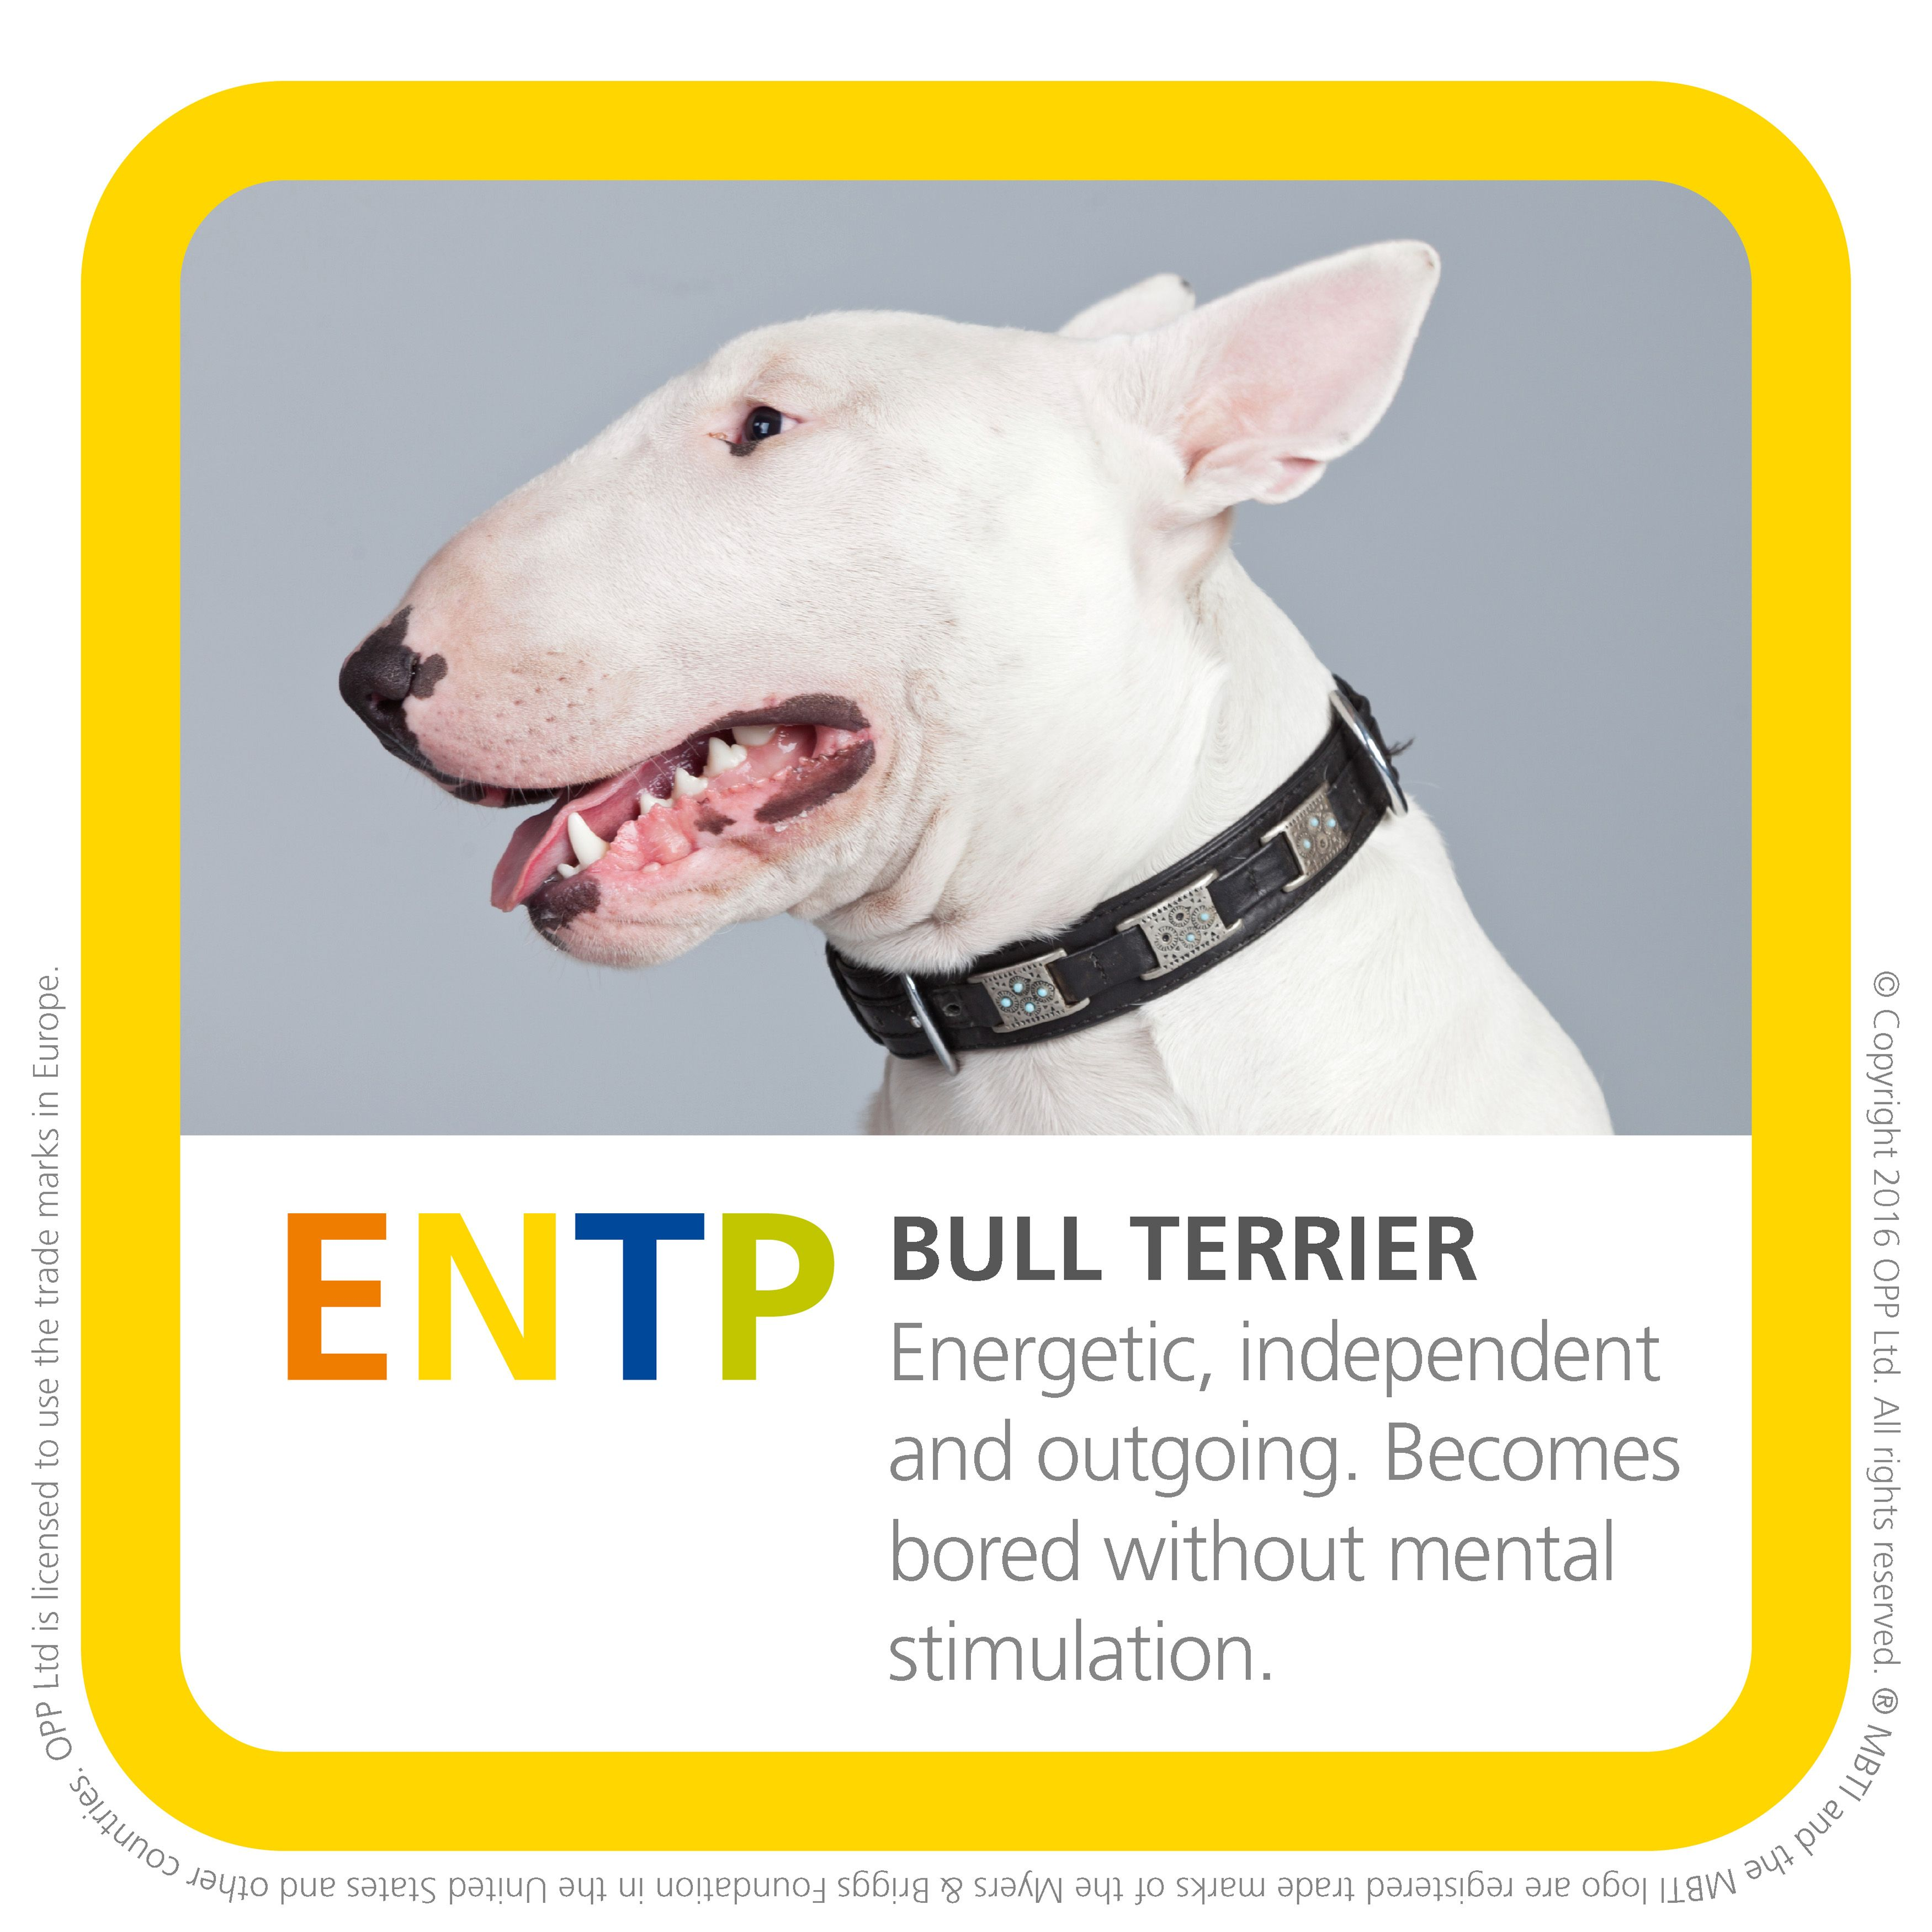 ENTP bull terrier. One of my favorite breeds! Entp